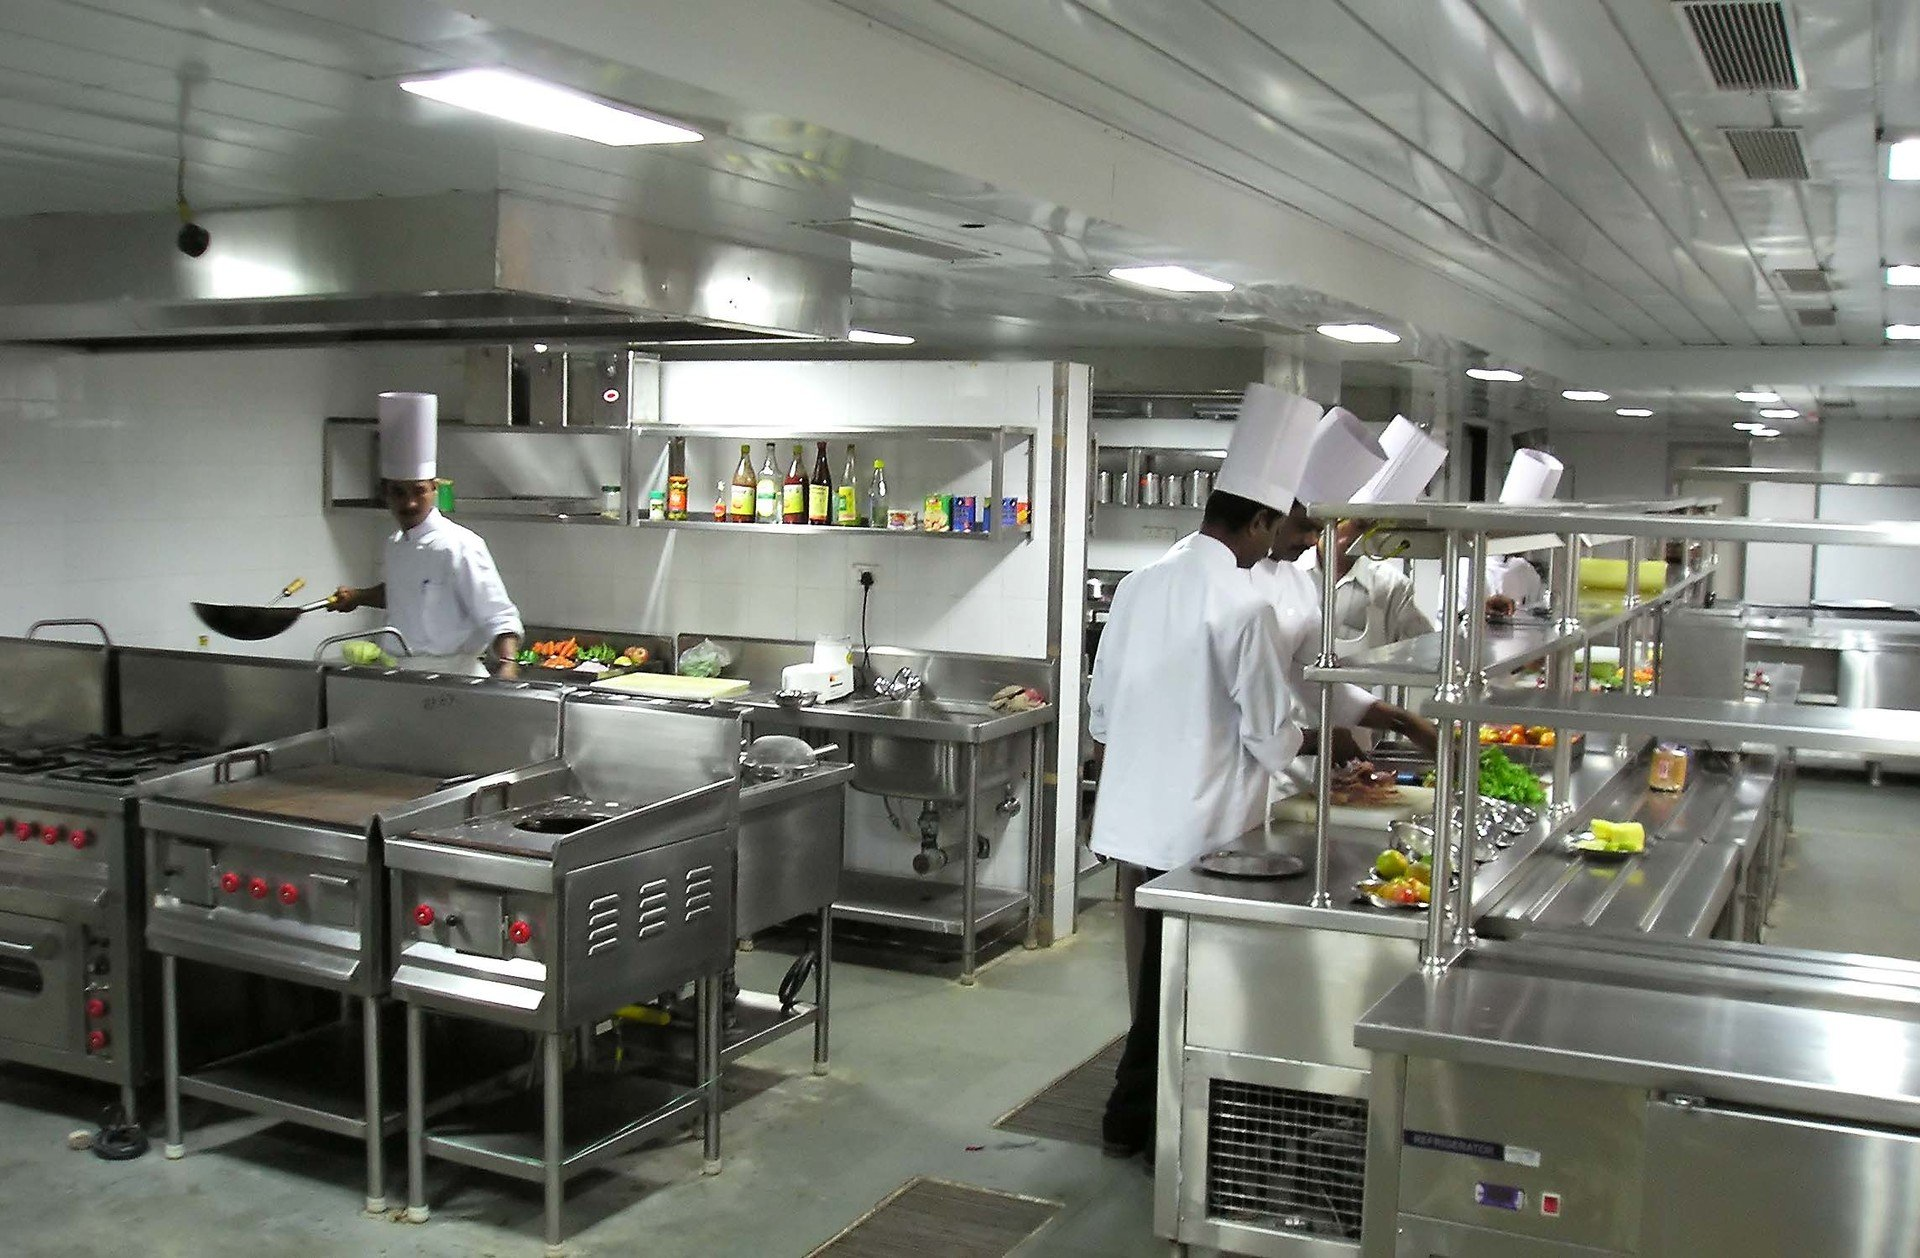 Restaurant Supplies - Food Service Made Easy